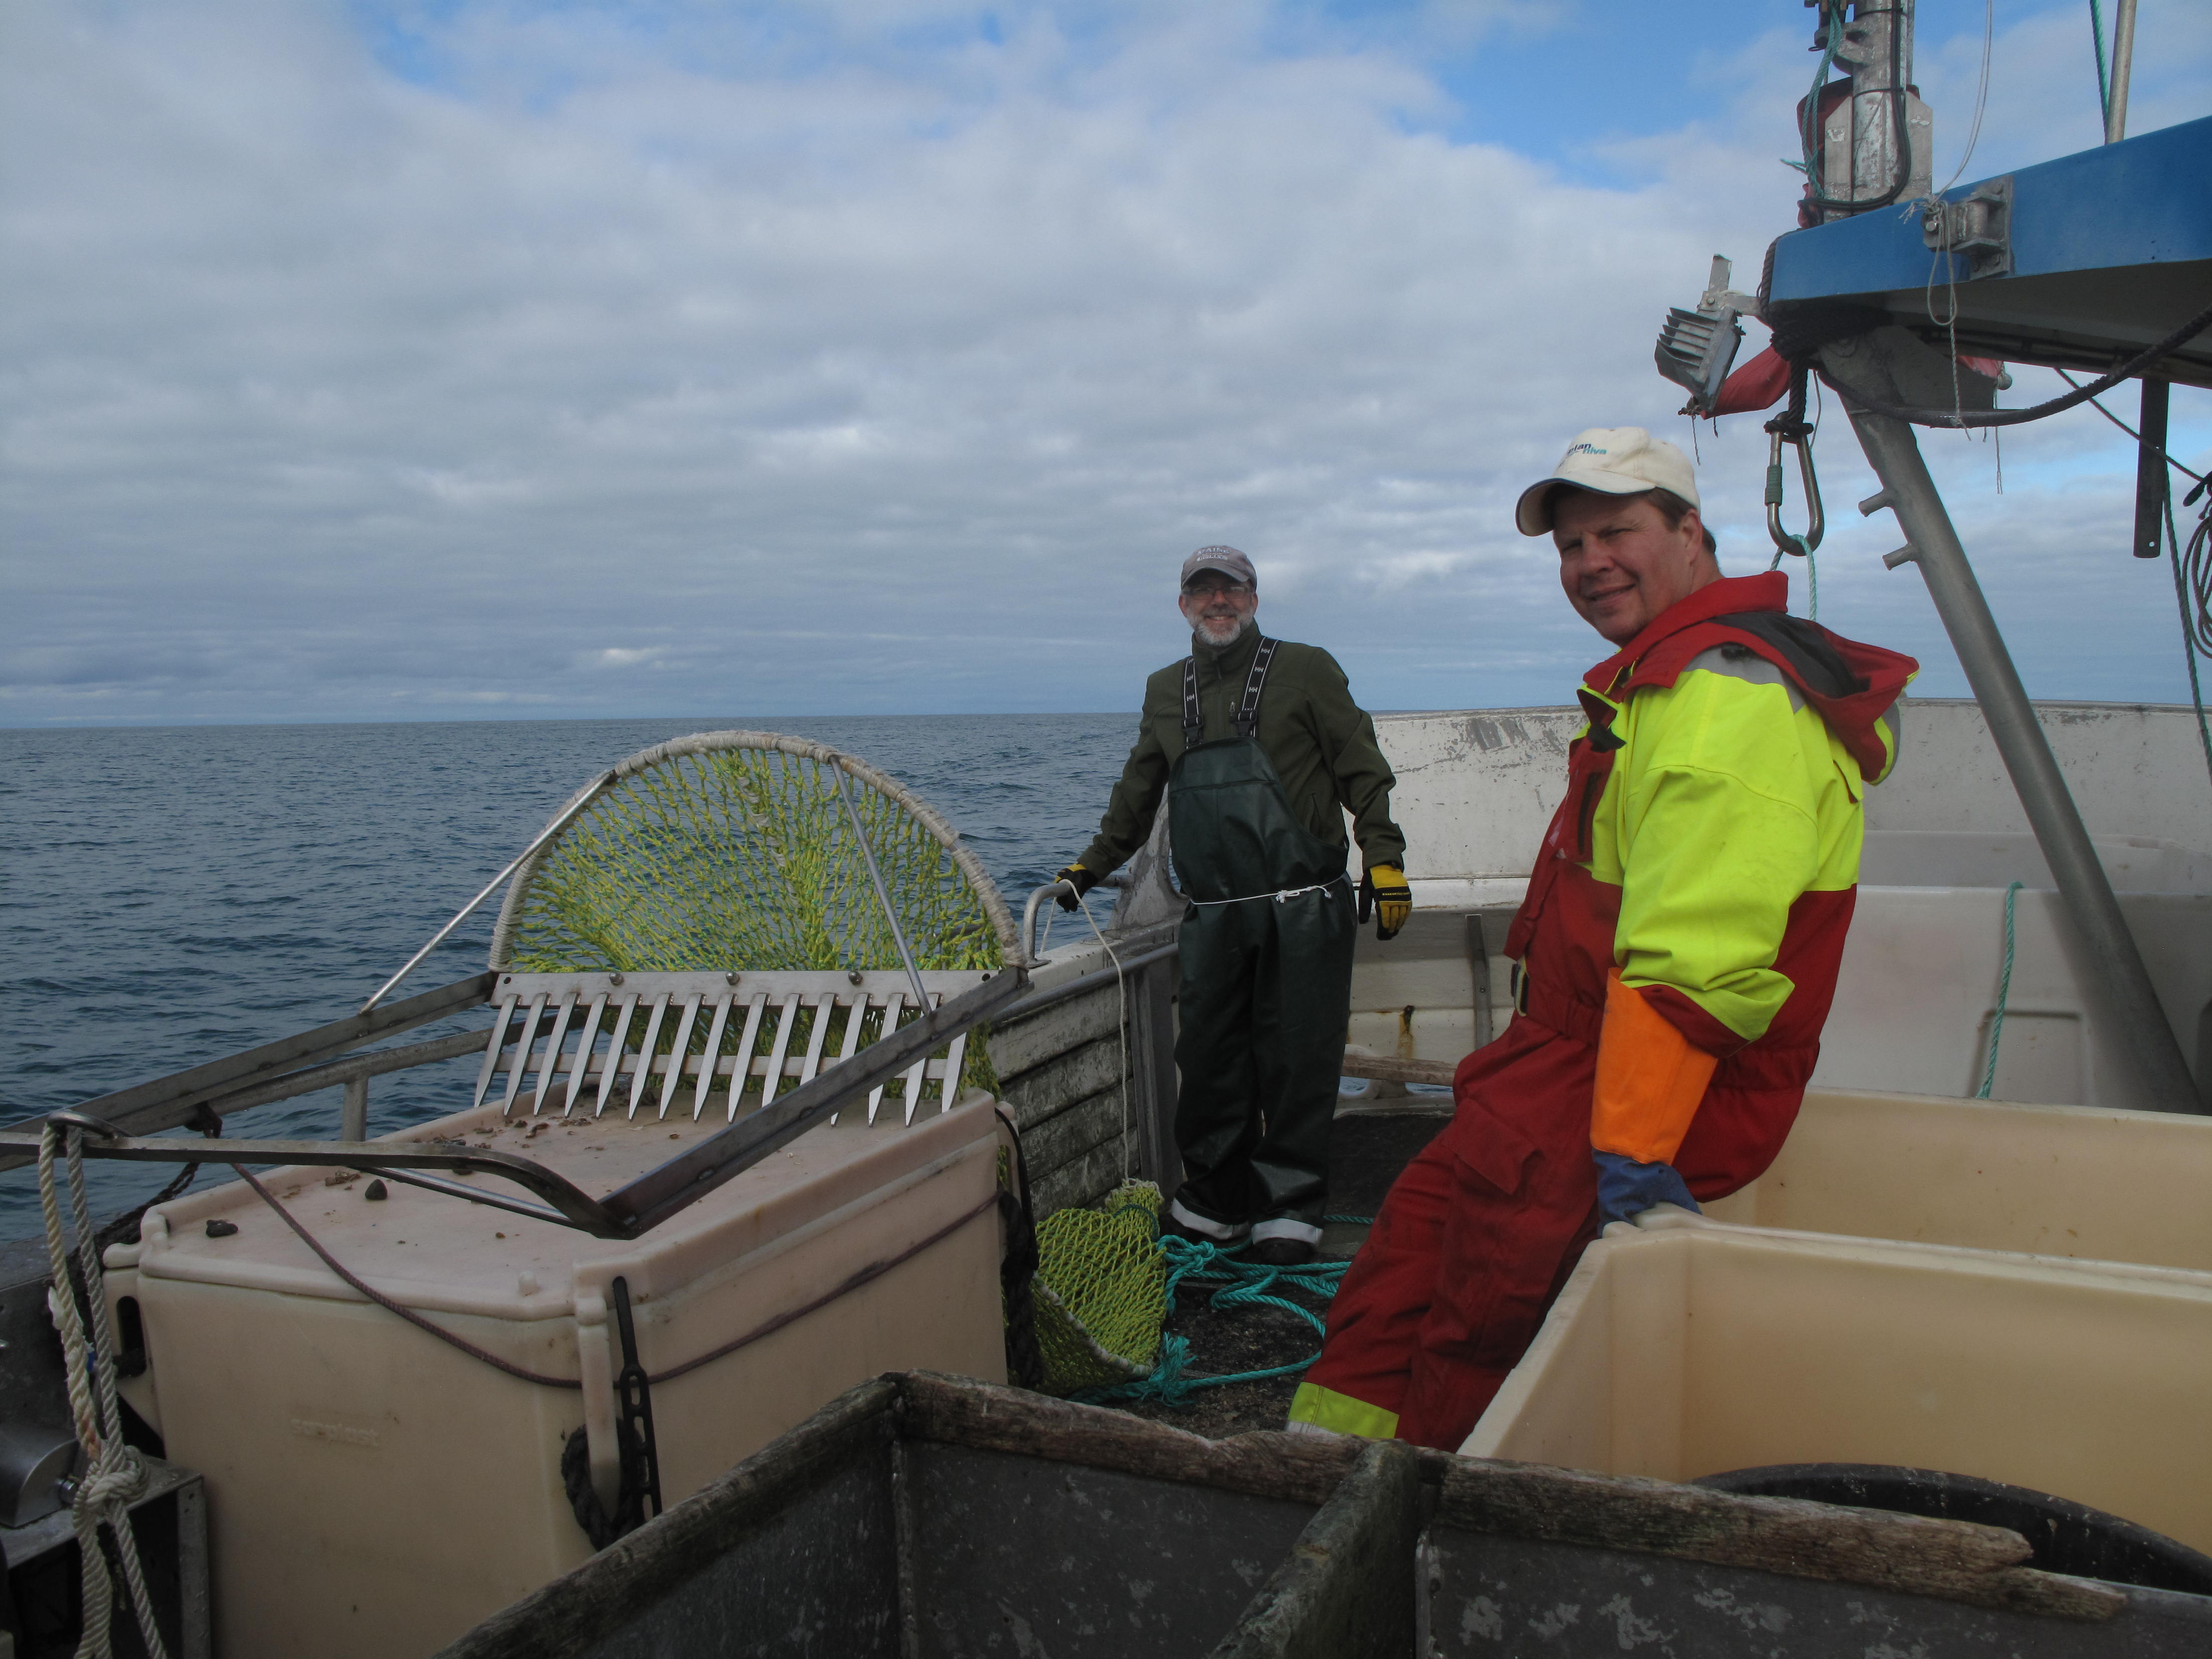 Al and Michael wait until we are in position before dropping the dredge overboard